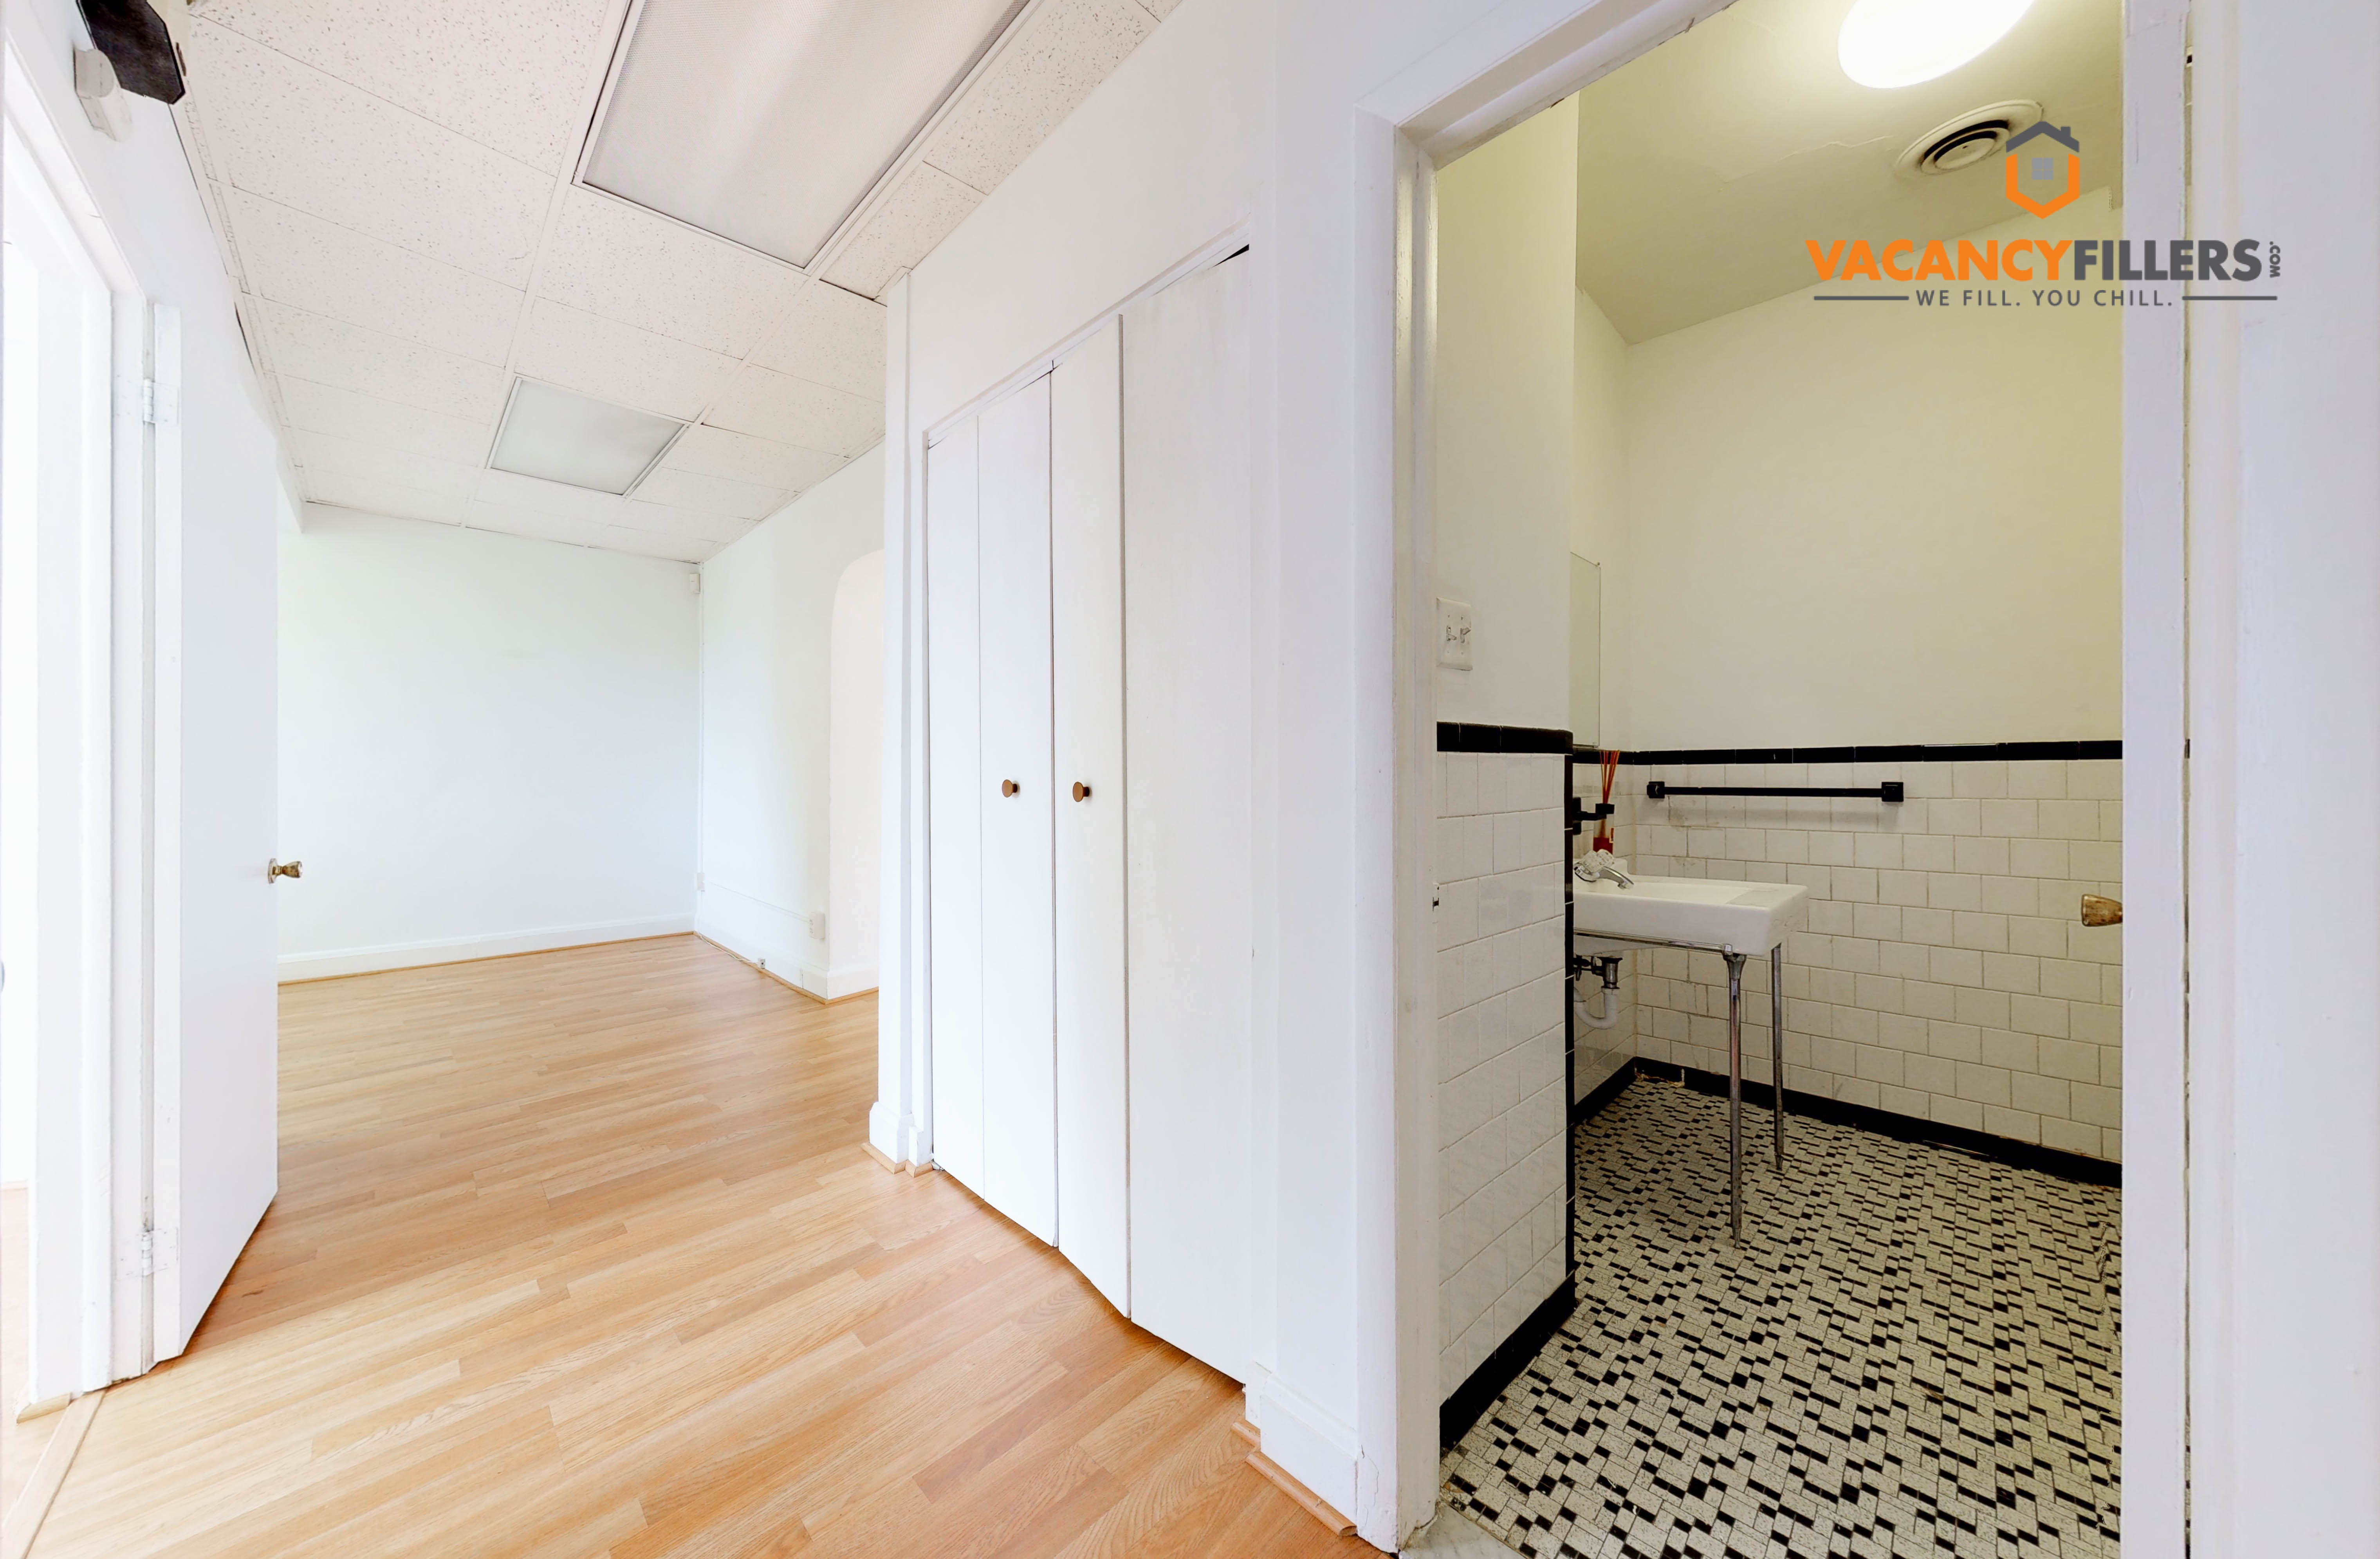 Reservoir Hill Bolton Hill Area 1 Bedroom Rental At 521 N Charles St Baltimore Md 21201 360